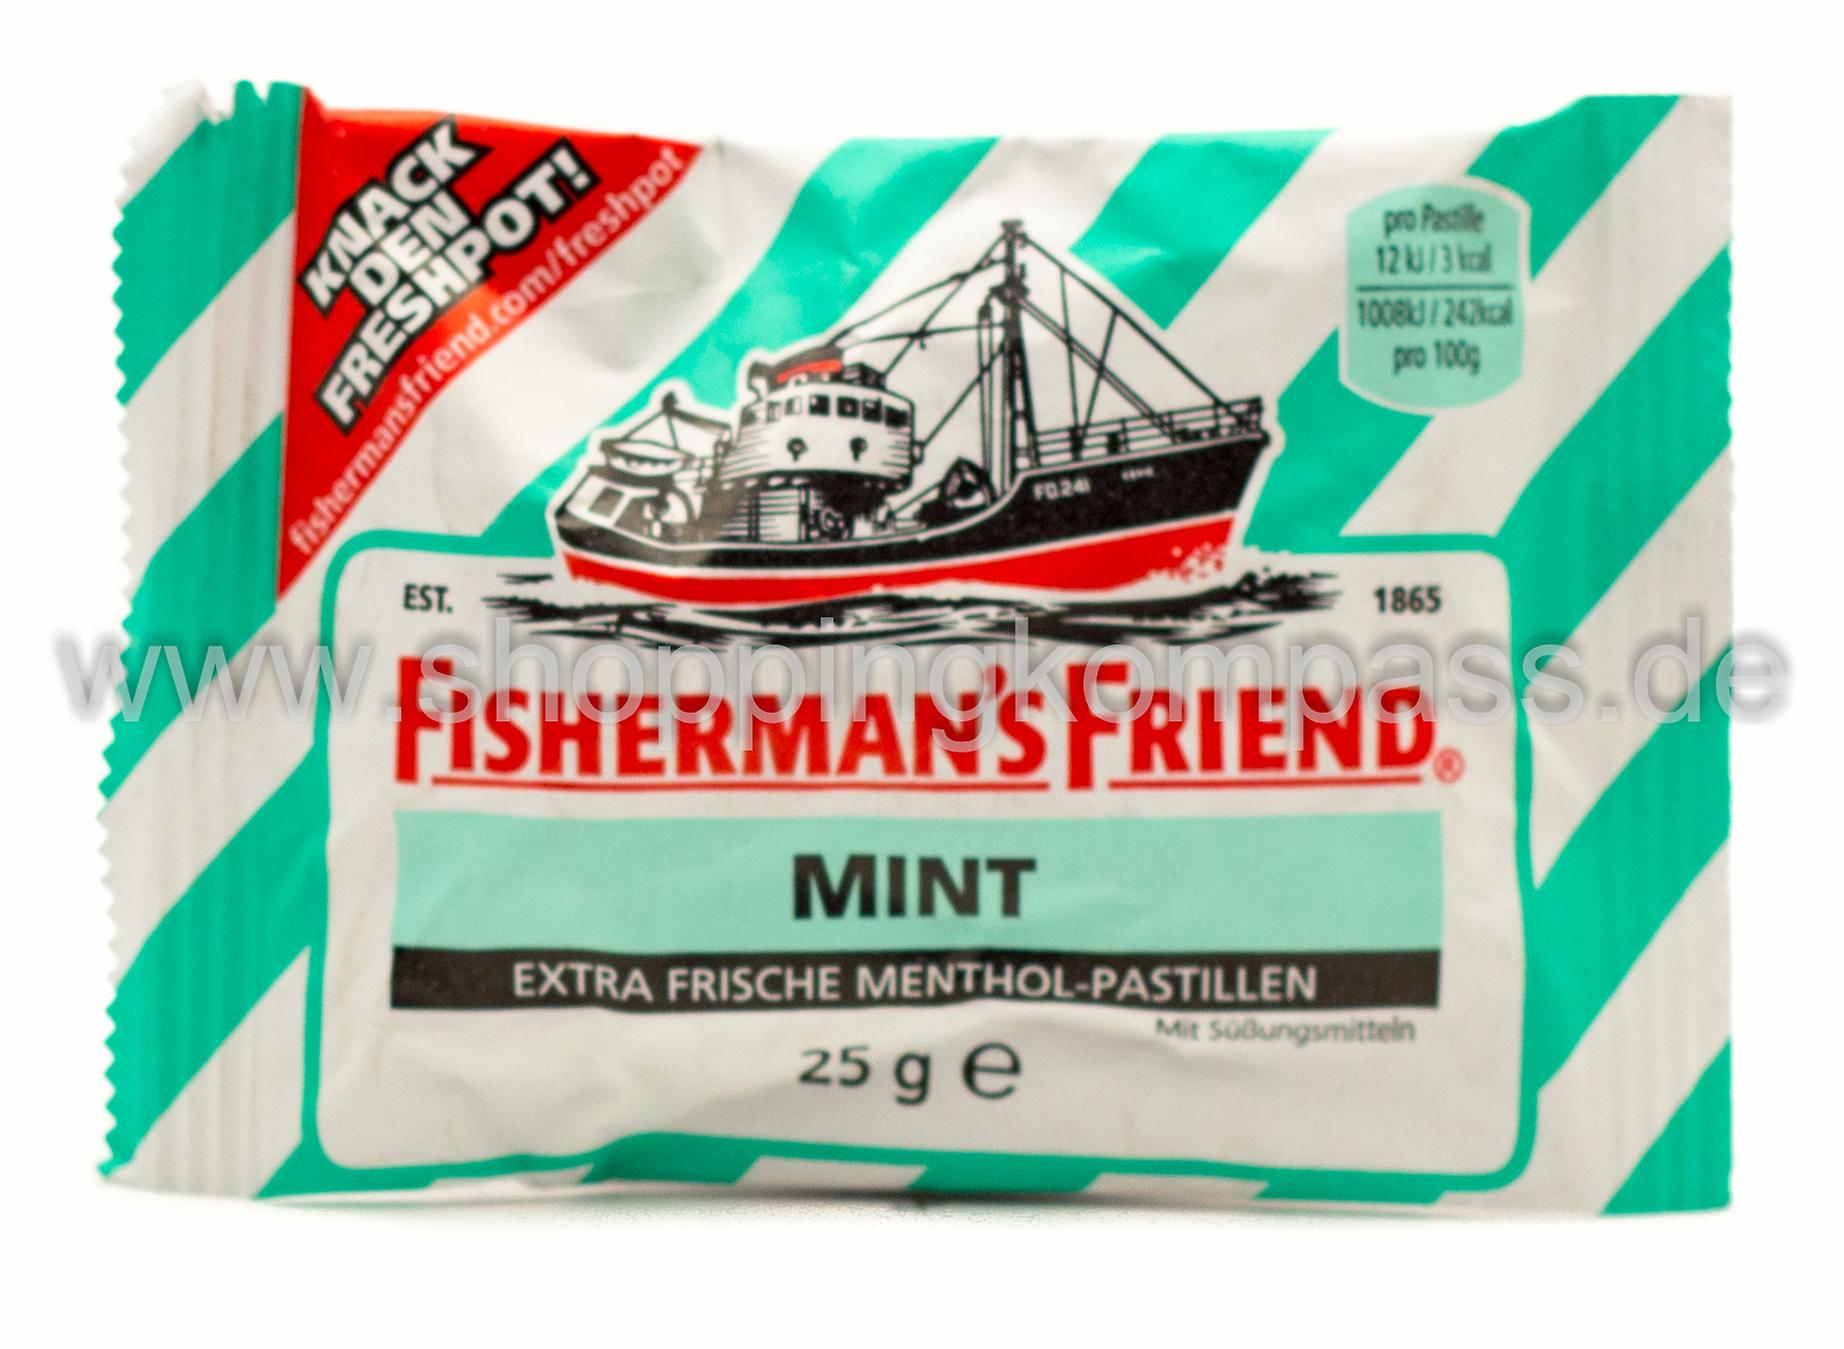 Fisherman's Friend Mint 25 g